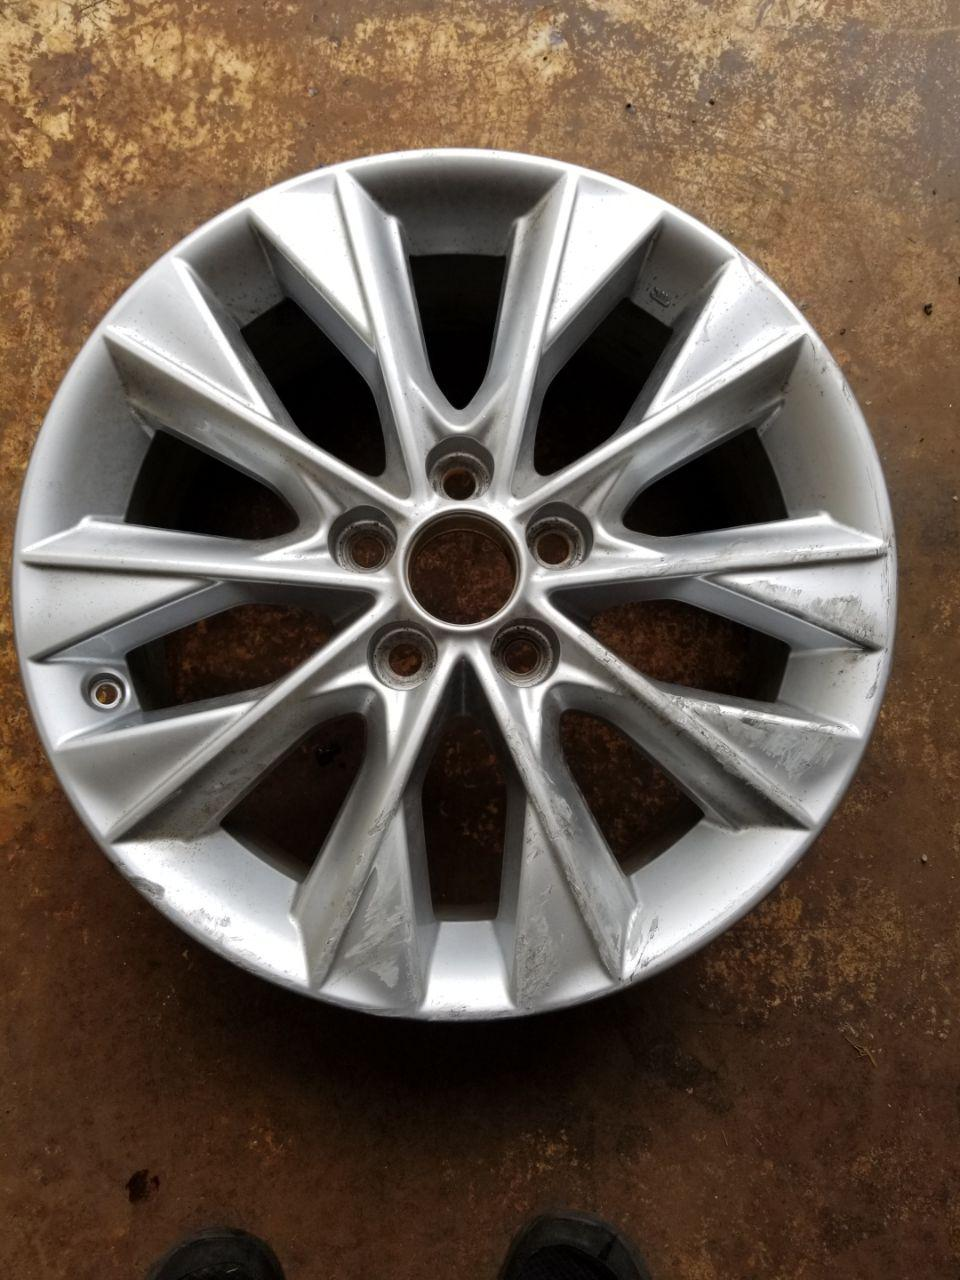 - OEM WHEELS - 2013-2014 LEXUS ES300H 17x7 10 SPOKE Hollander #74275 /  USED